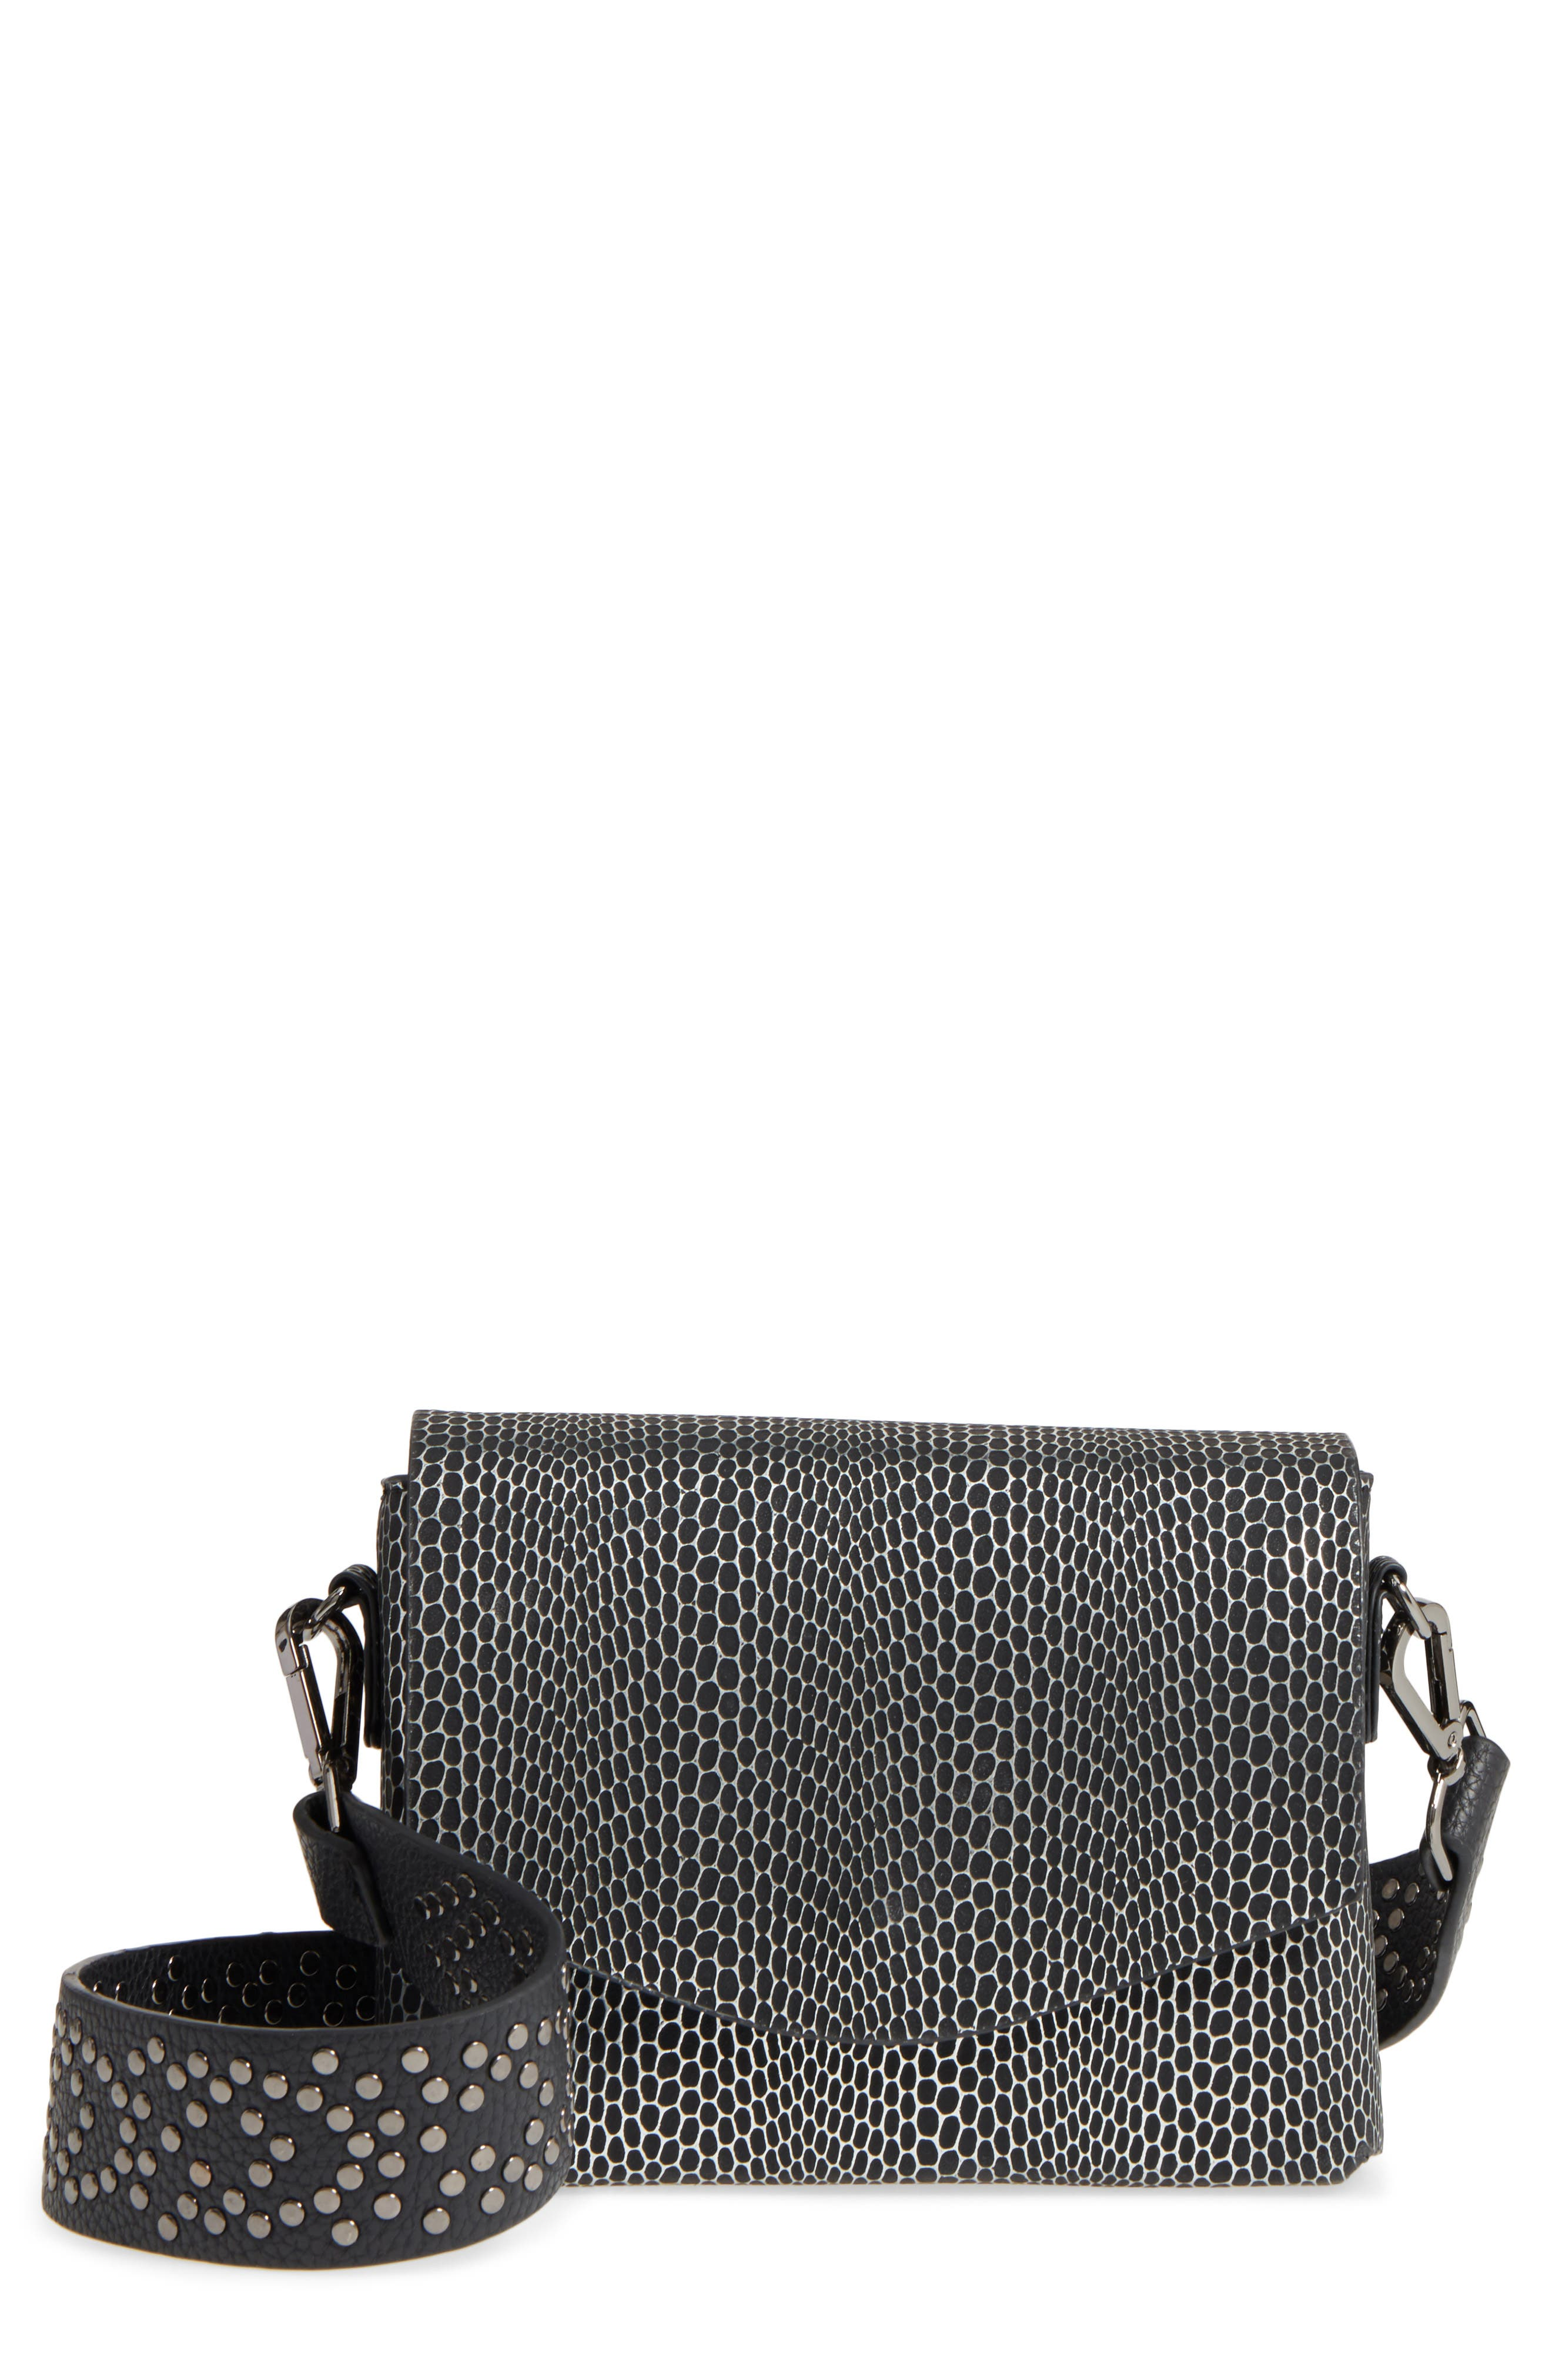 Street Level Textured Faux Leather Crossbody Bag